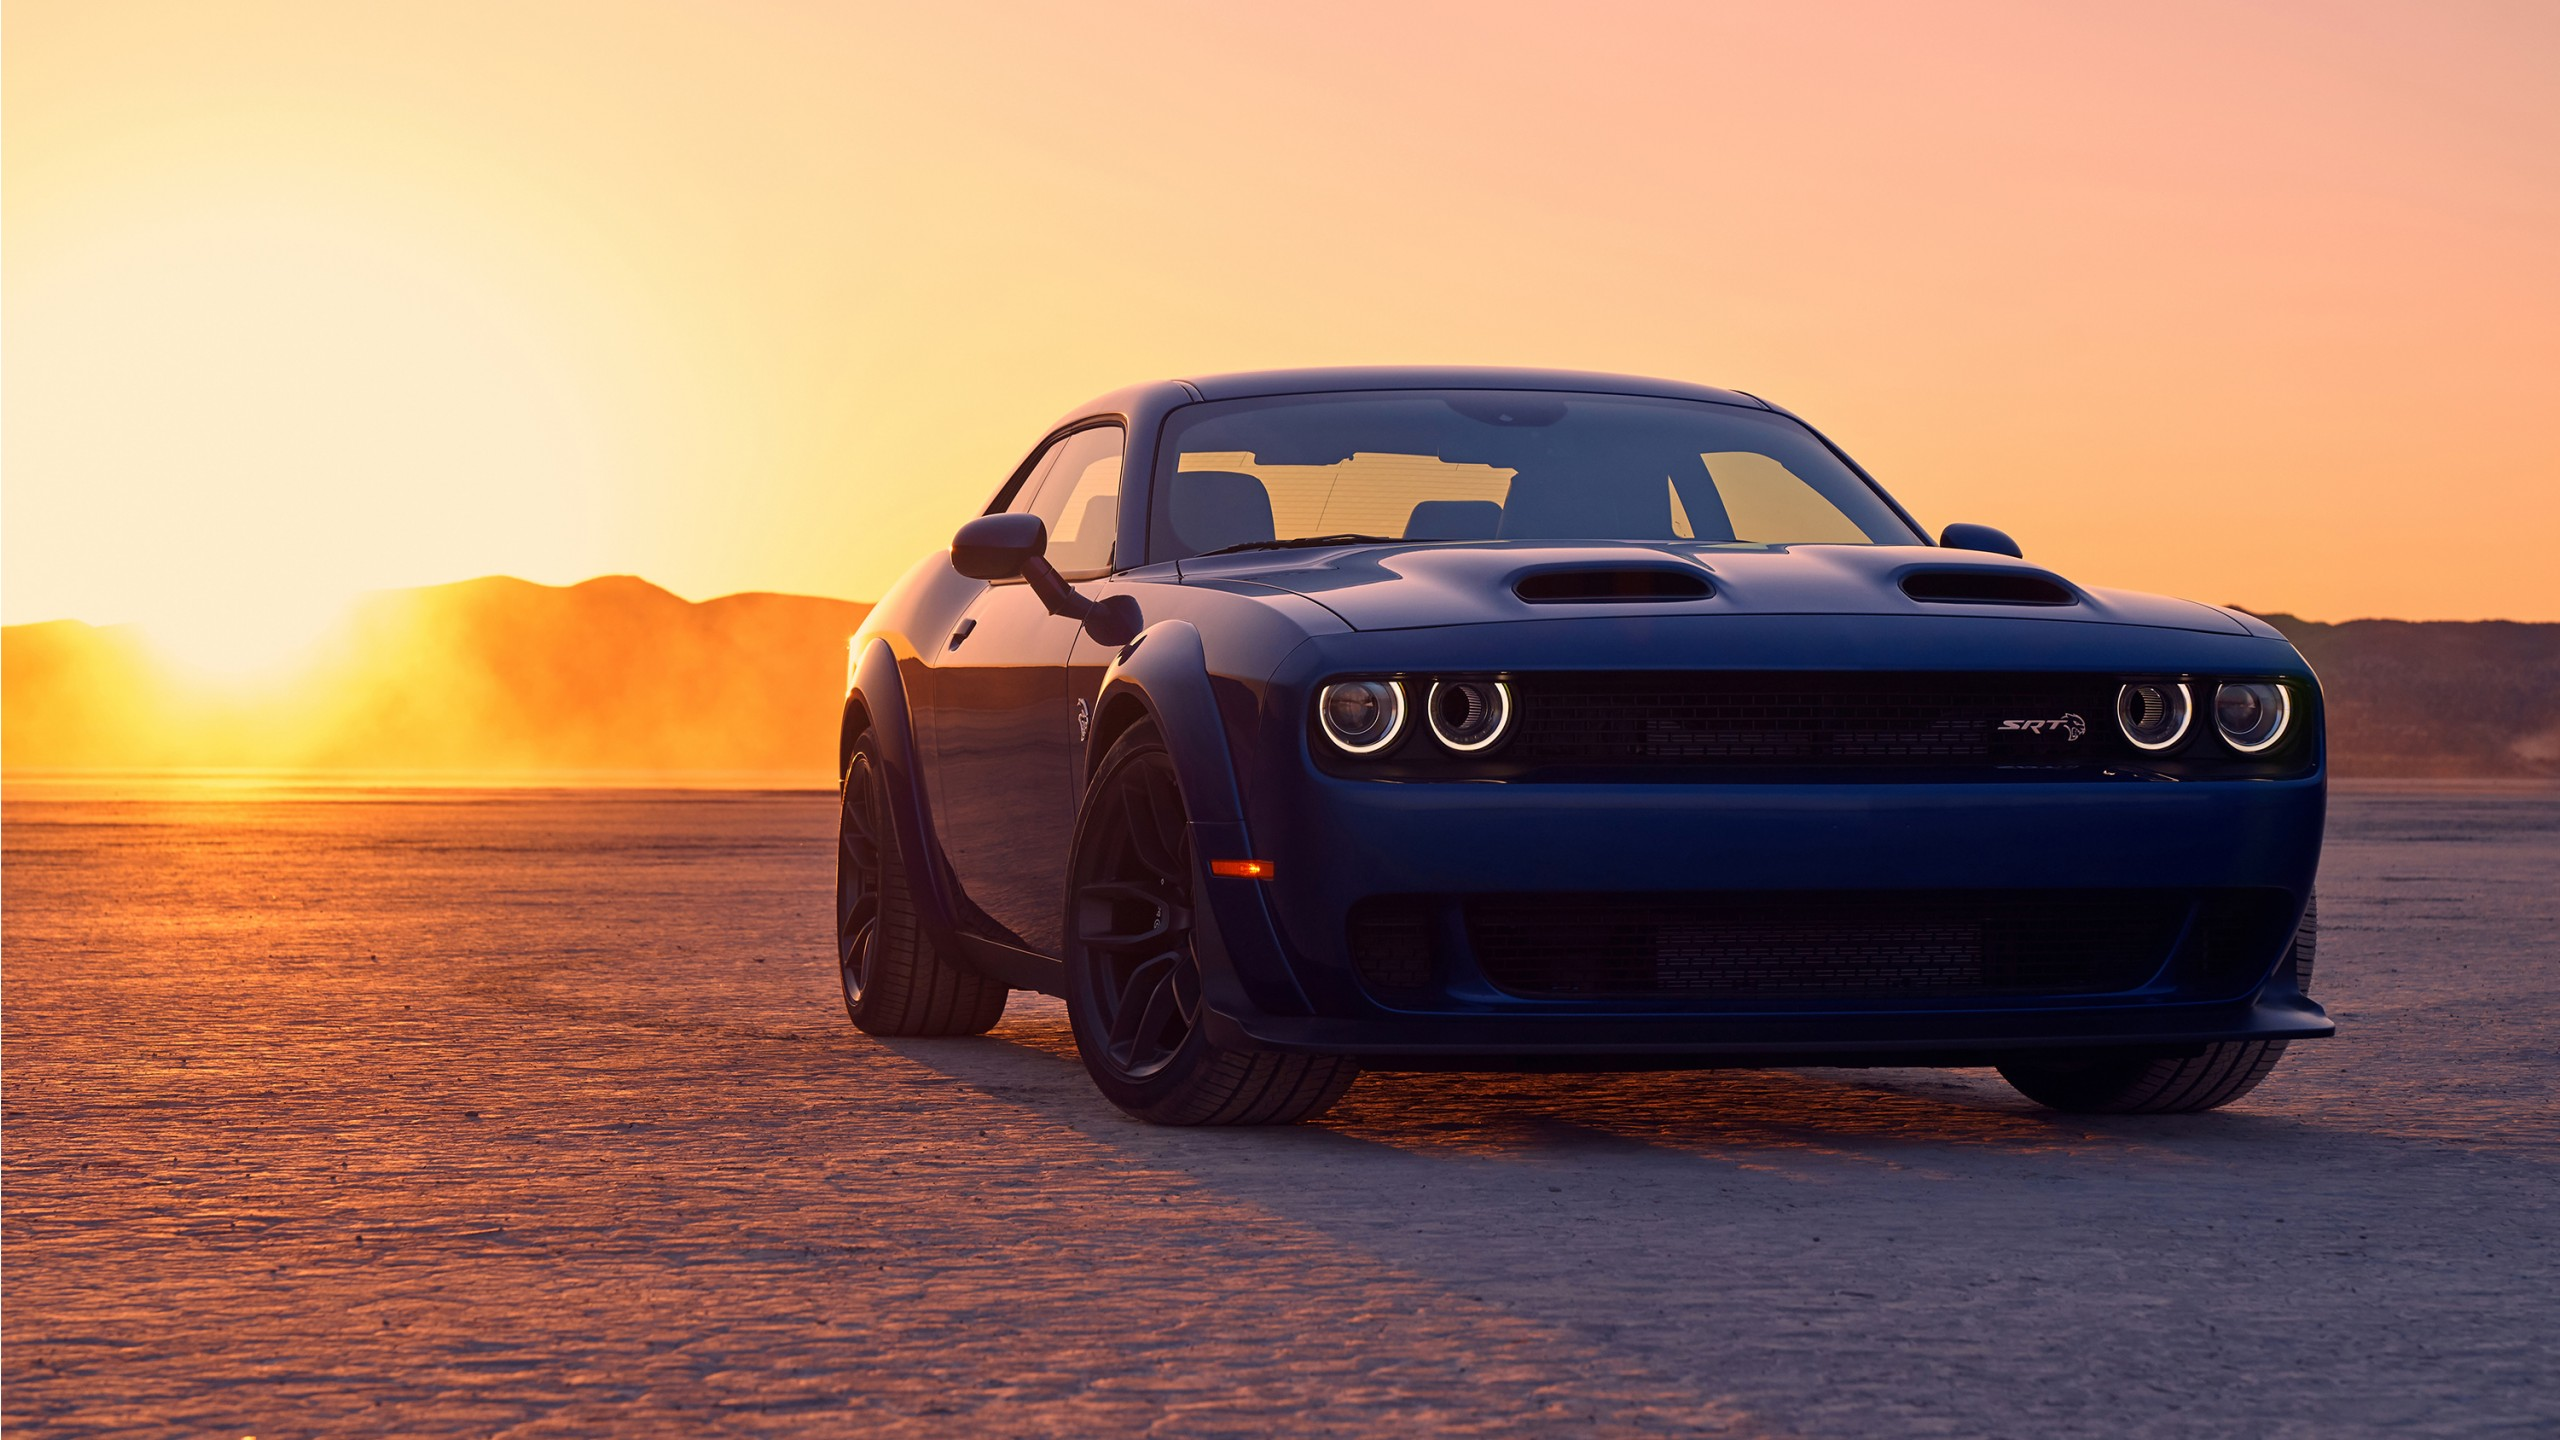 2019 Dodge Challenger SRT Hellcat Widebody Wallpaper HD